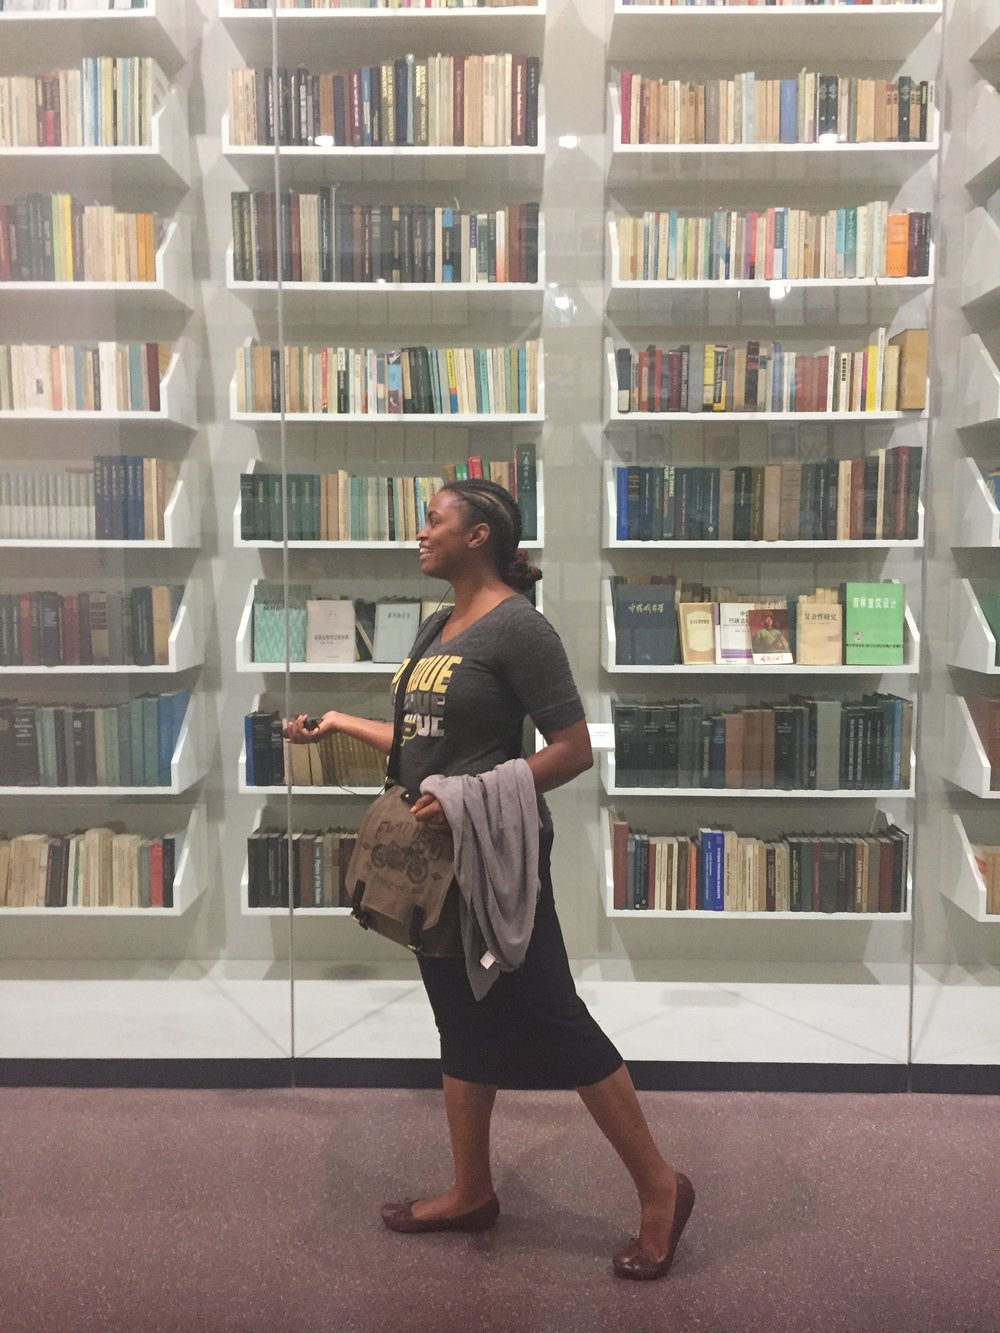 - Shavonne (@vonne_kaye) is an author and the blog curator for All Things Inspiration. She enjoys traveling, fitness, movies and the arts. Pictured here at a museum at Shanghai Jiao Tong University in Shanghai, China (May 26, 2017).